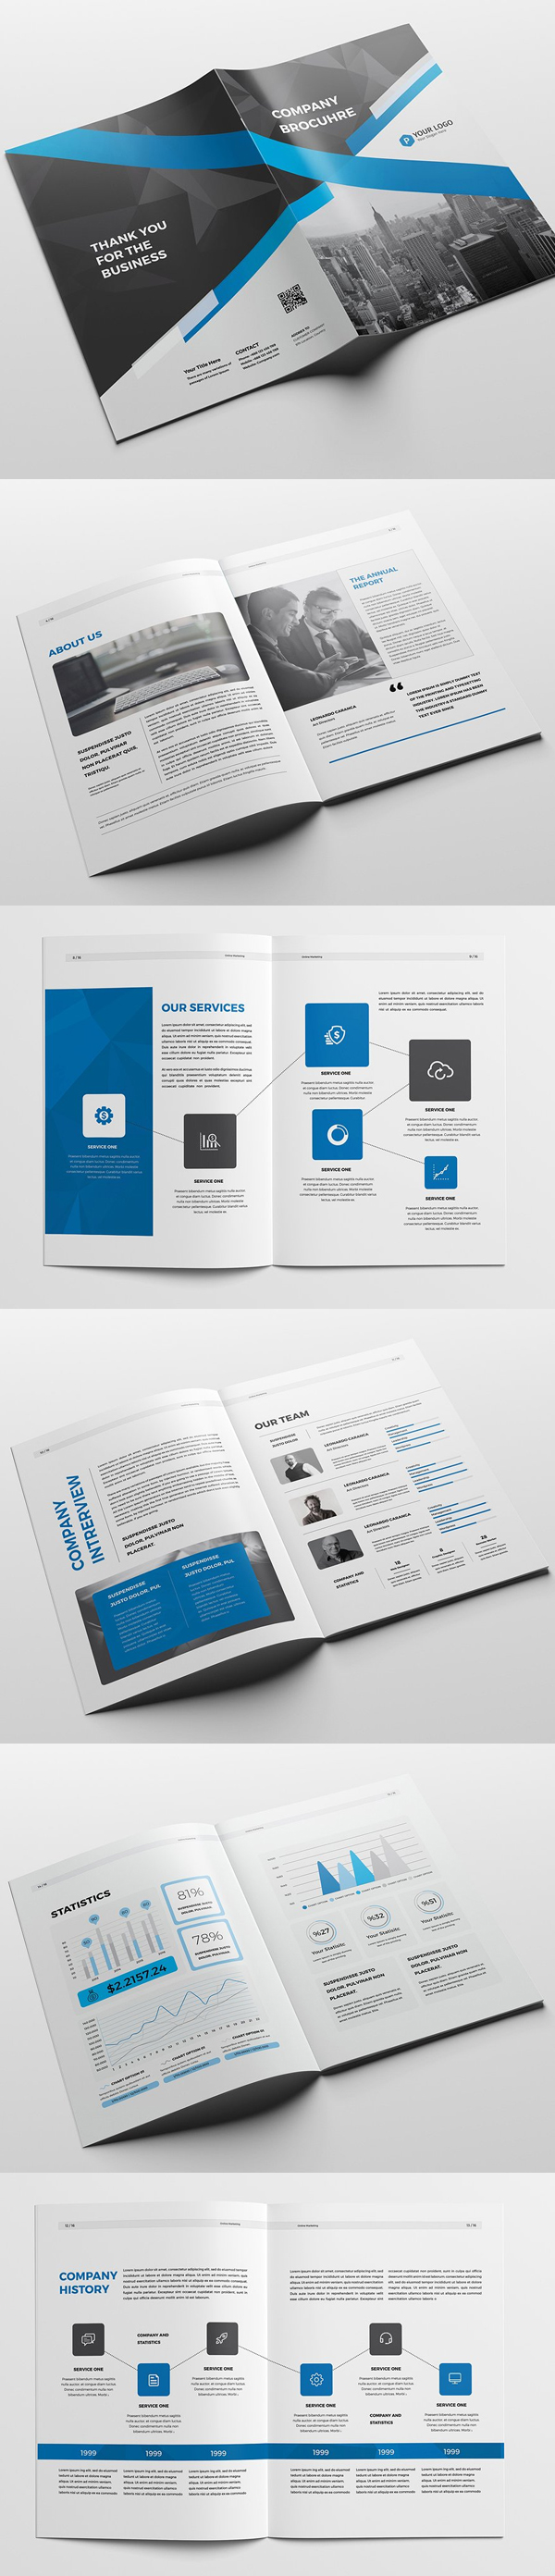 100 Professional Corporate Brochure Templates - 49